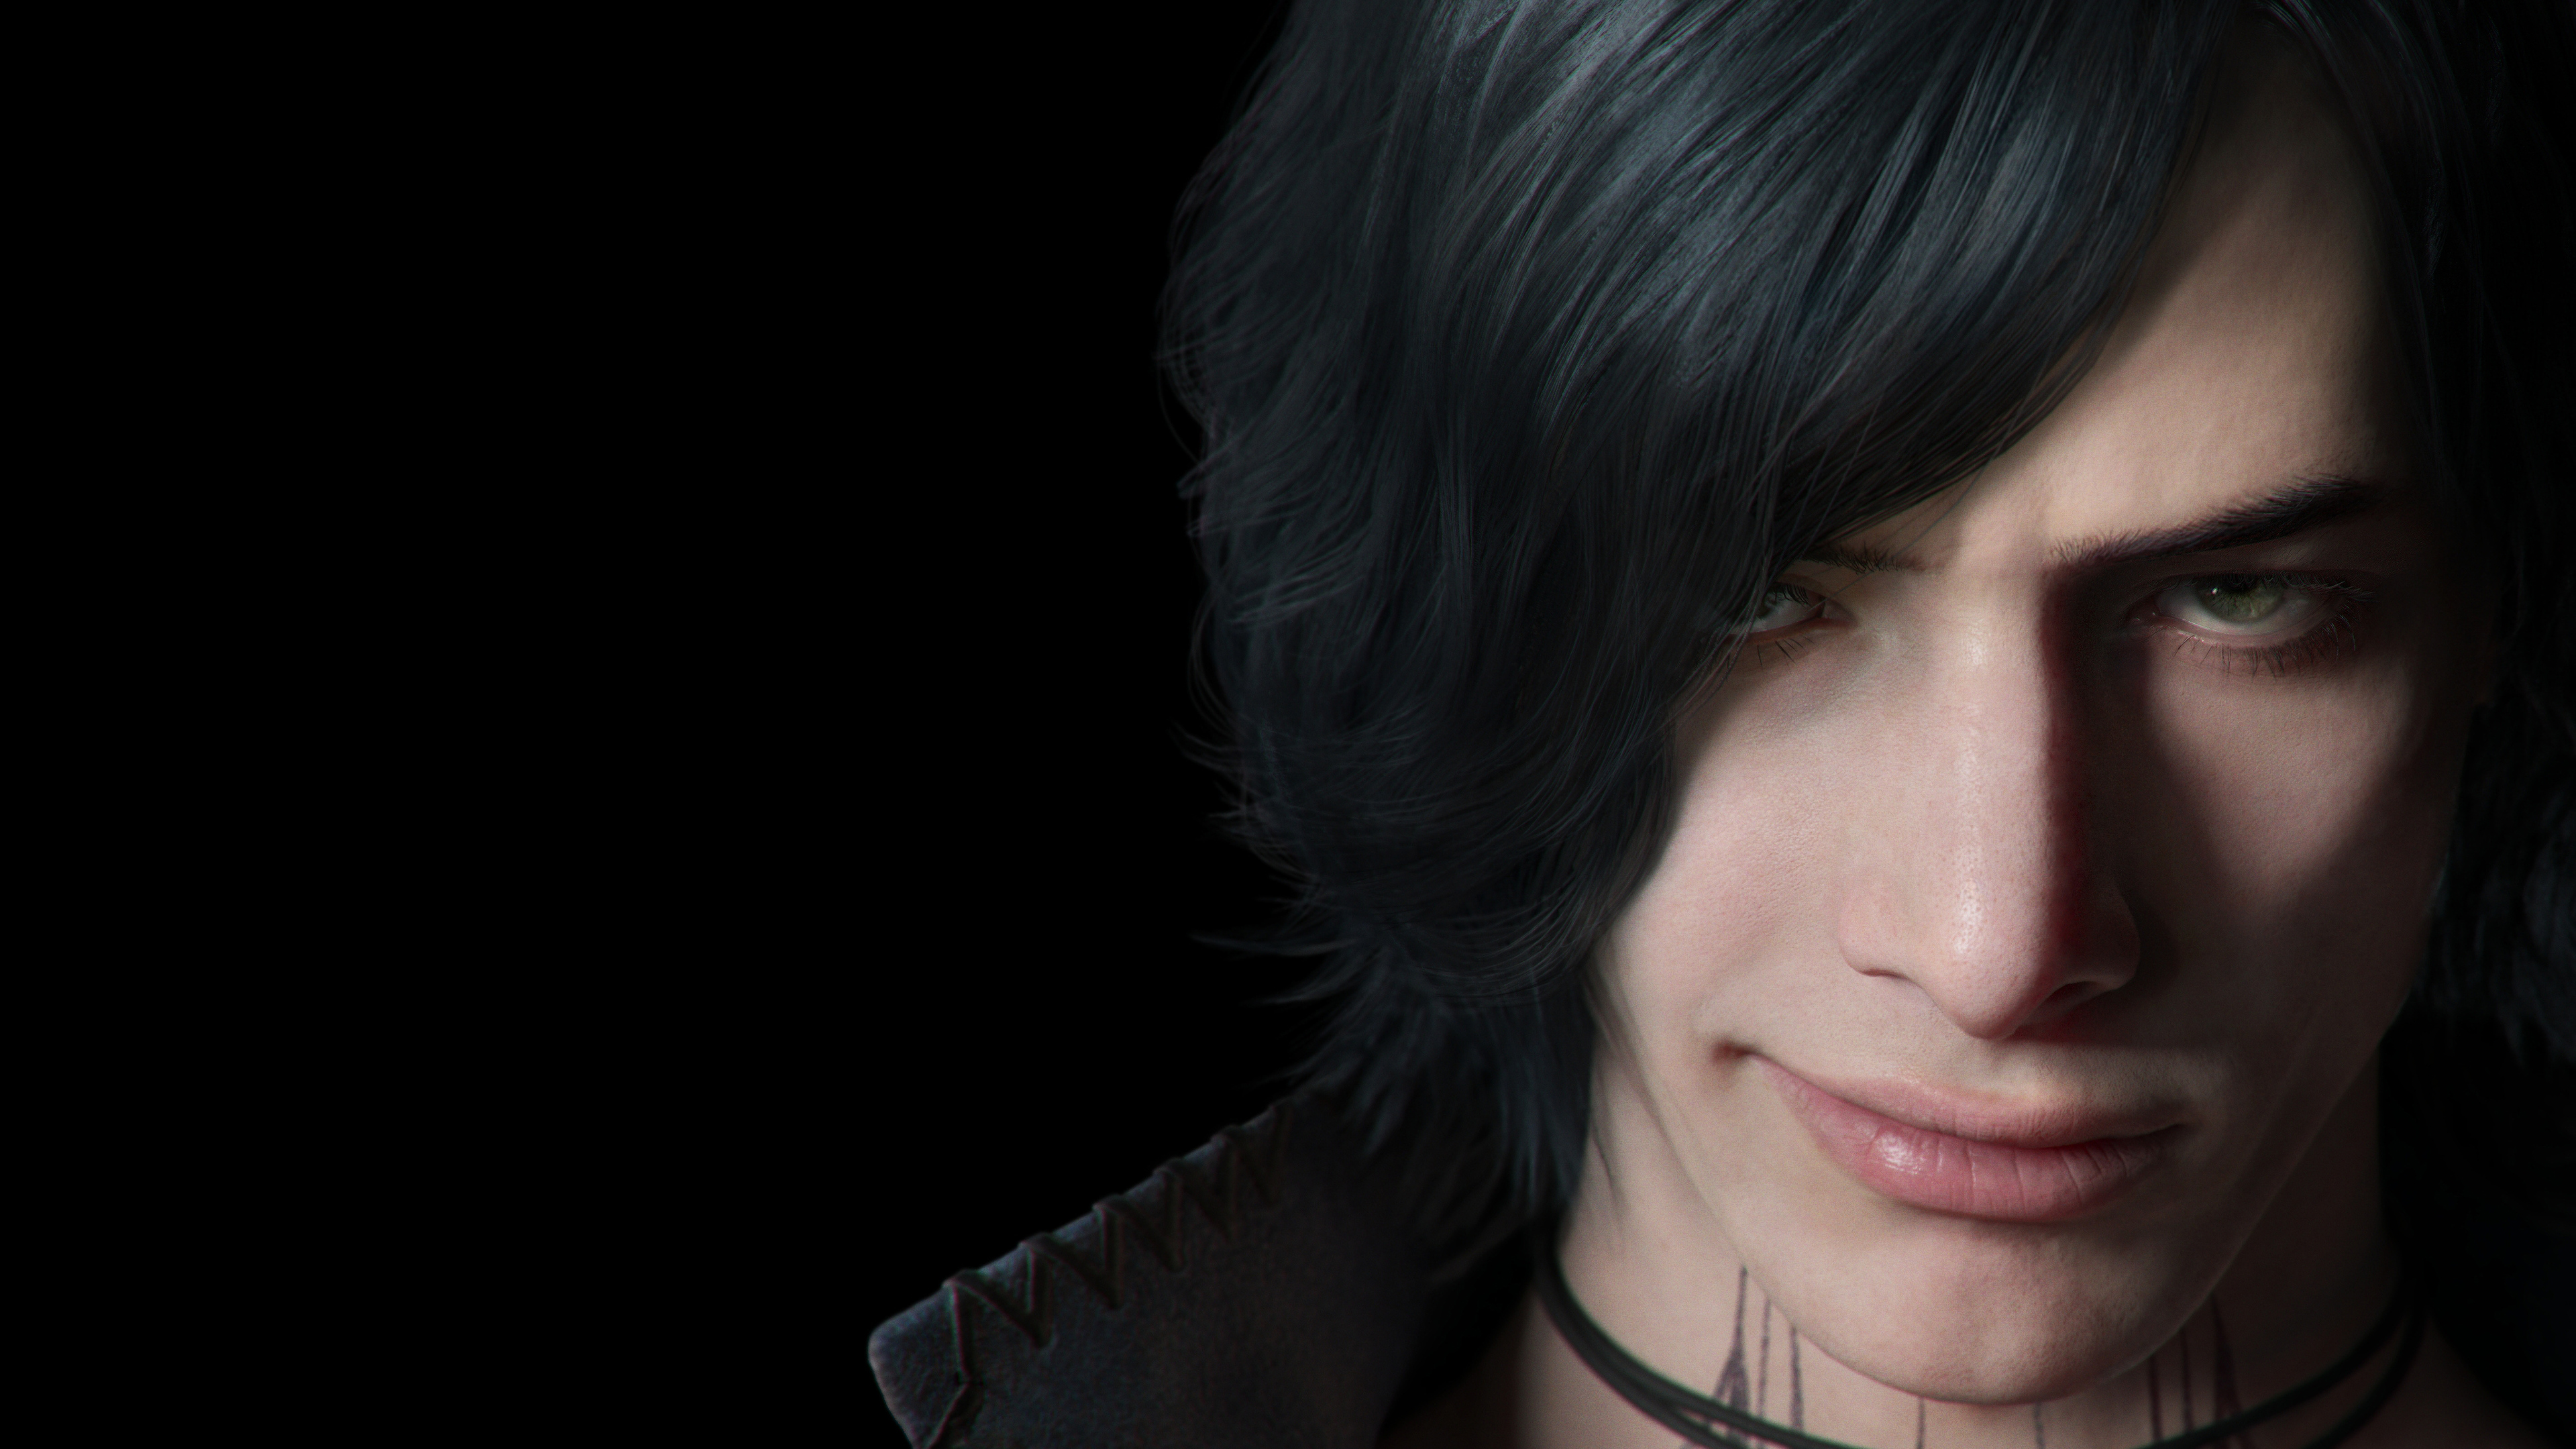 V Devil May Cry 5 V Club Wallpaper 42643699 Fanpop